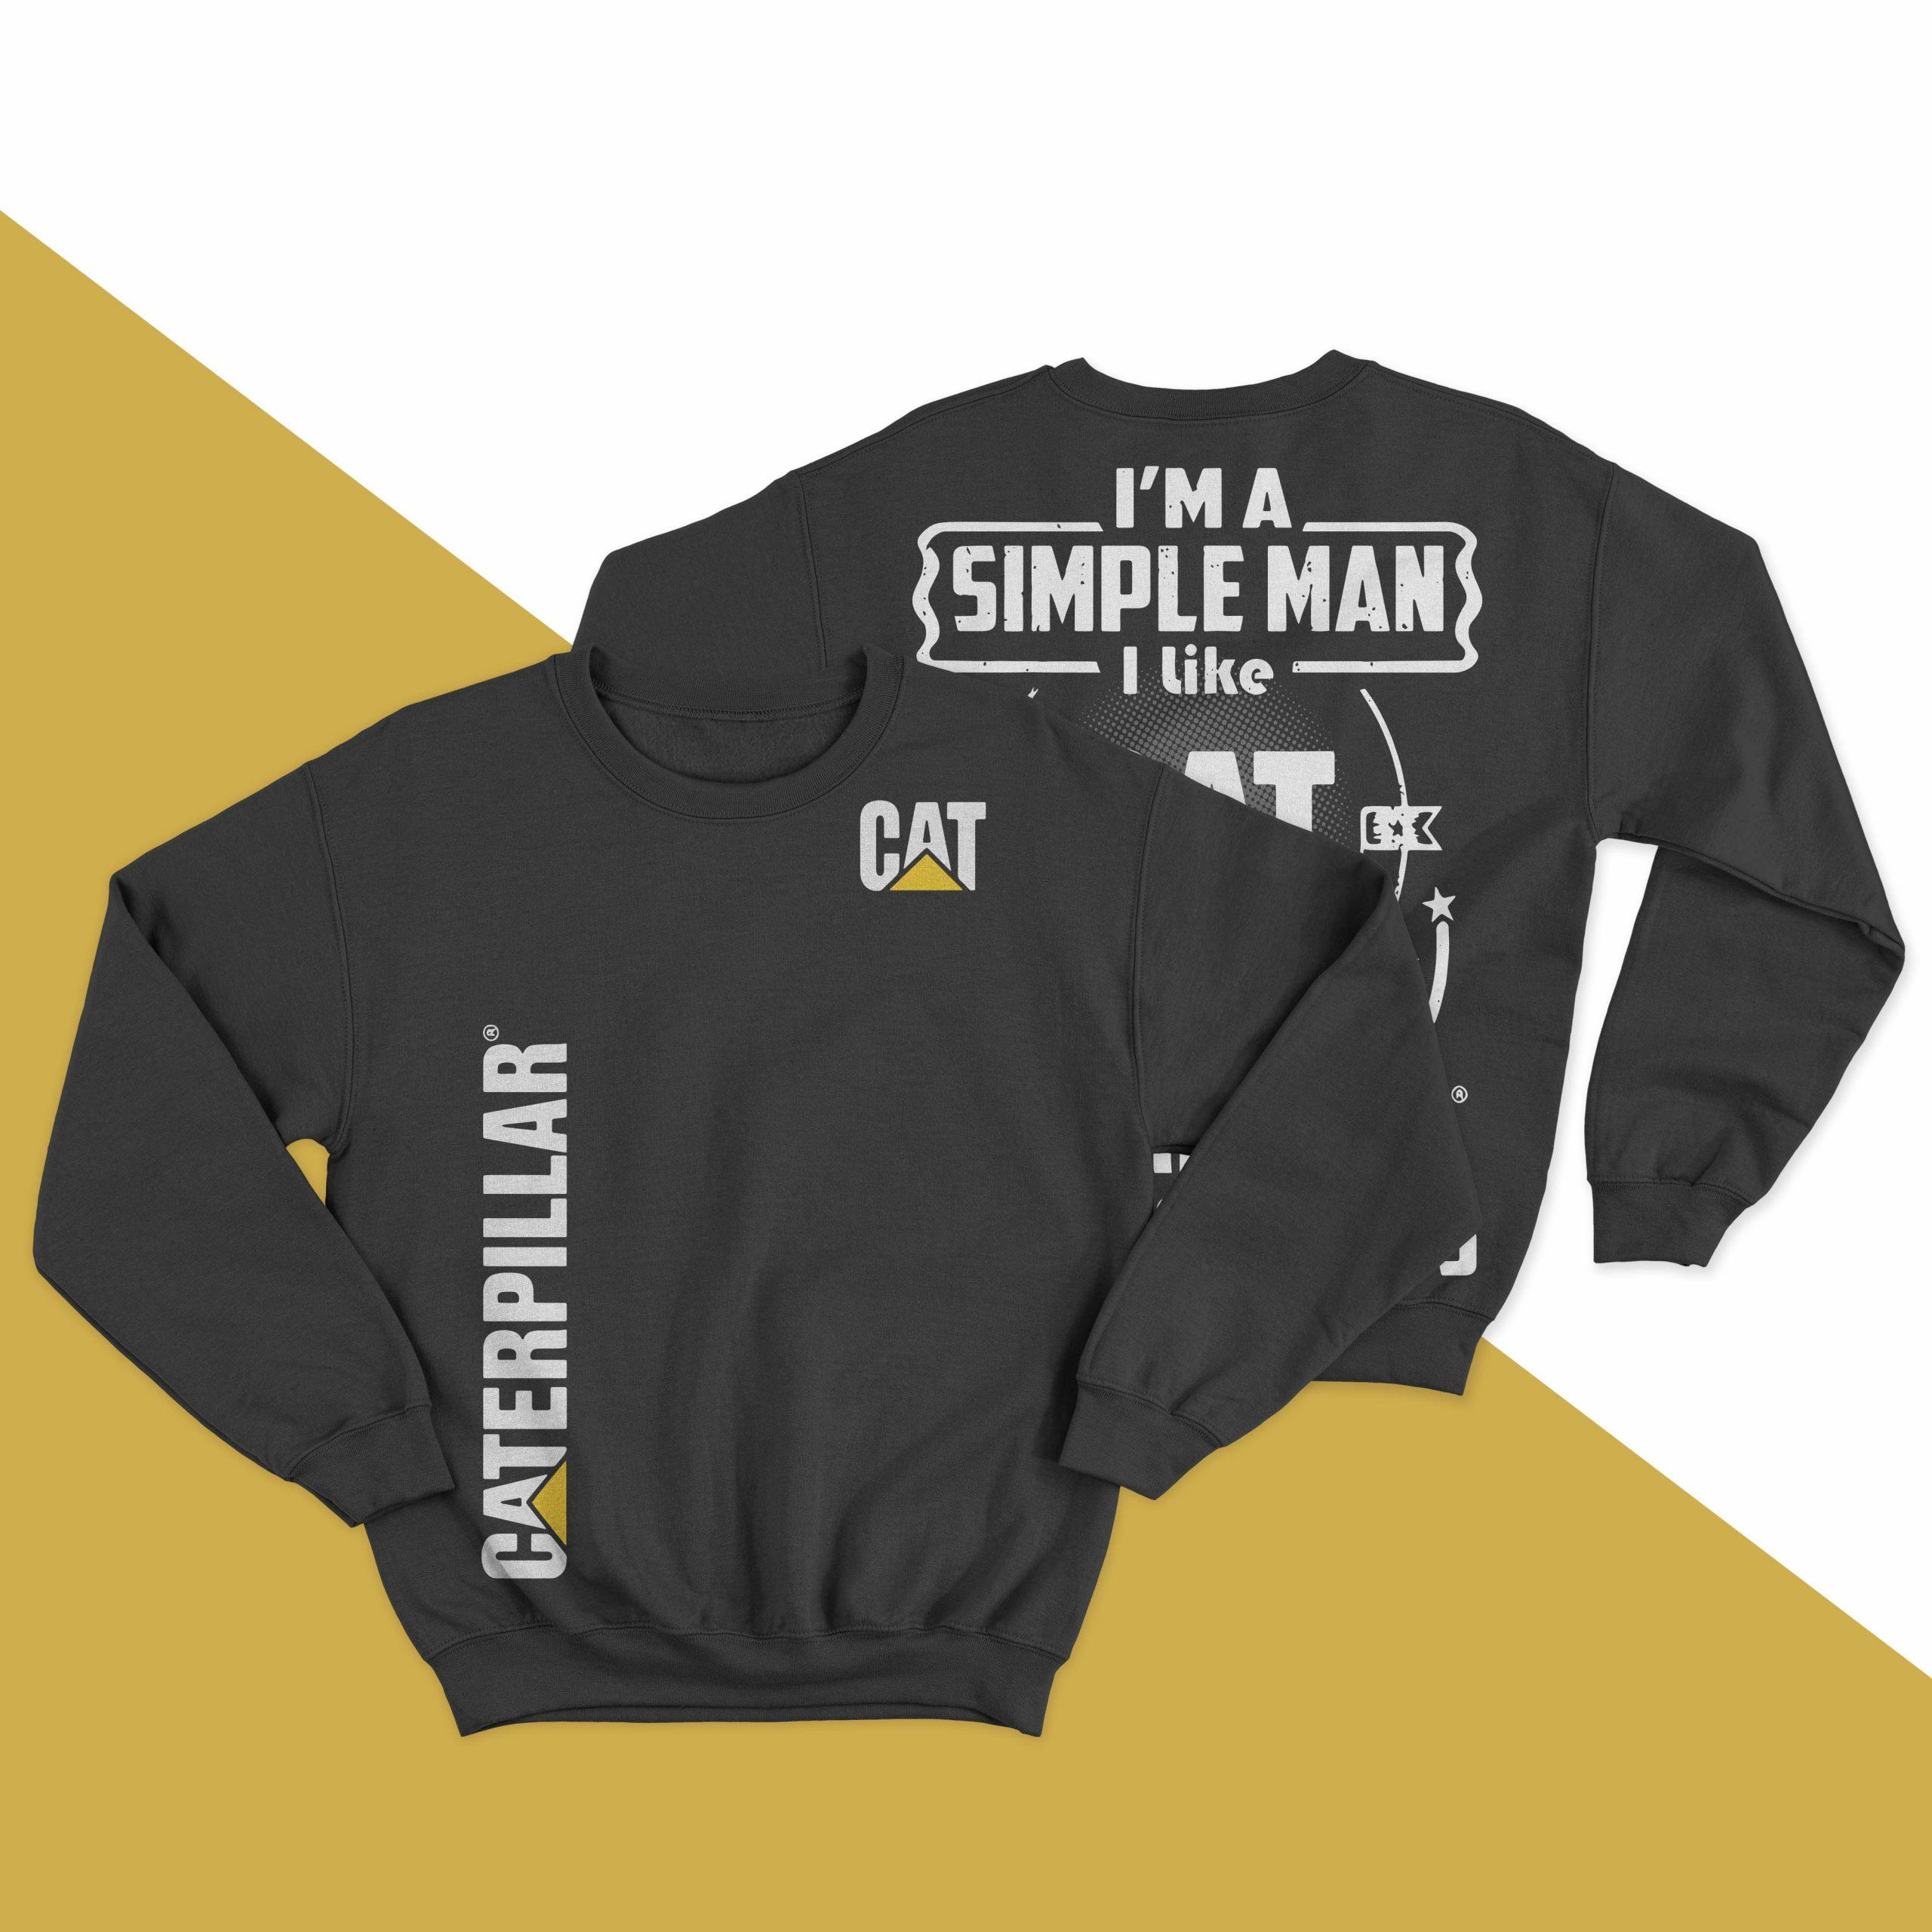 I'm A Simple Man I Like Cat Caterpillar Beer And Boobs Longsleeve